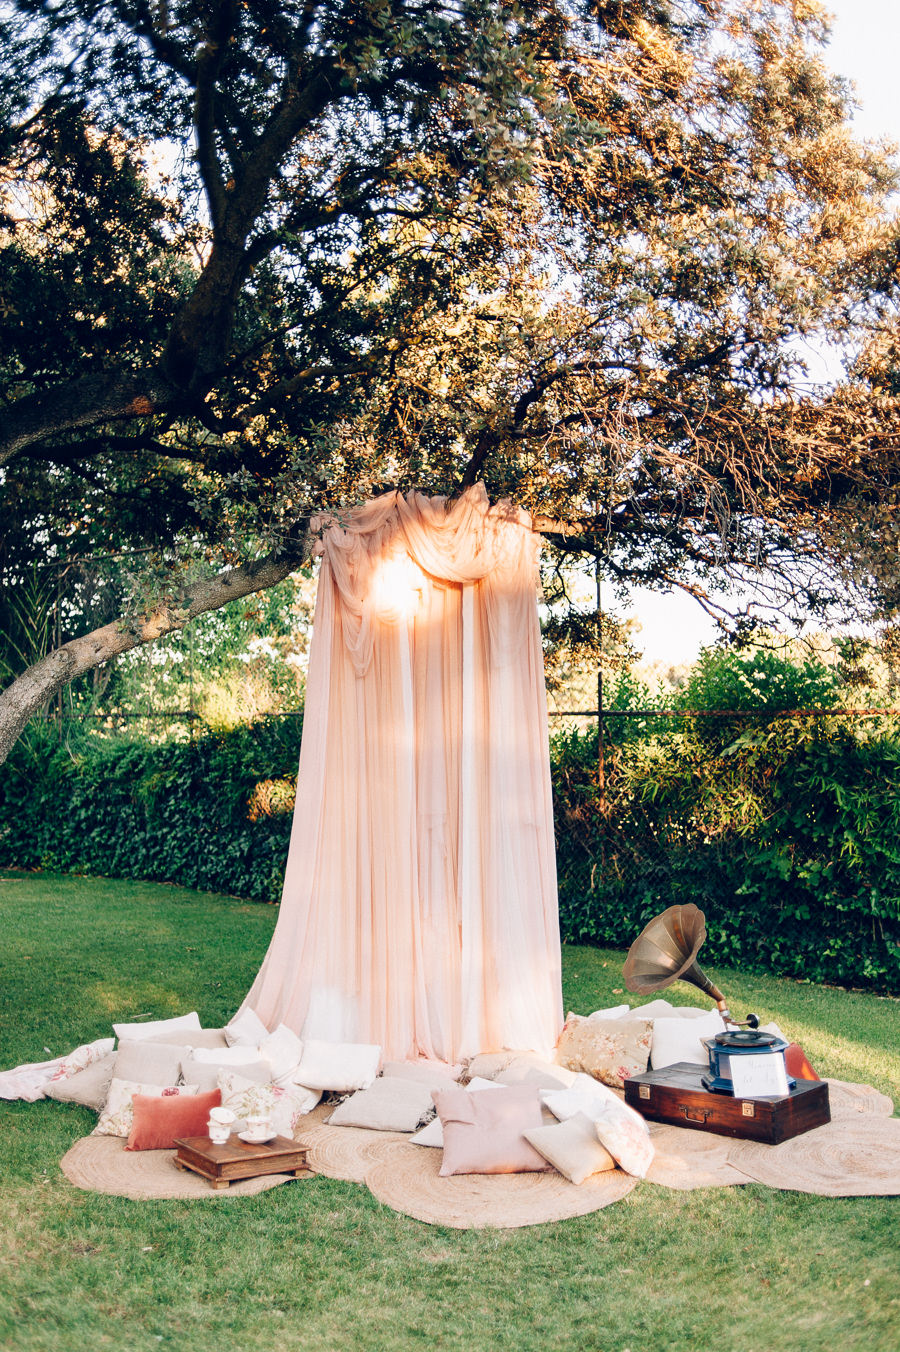 Calista One Summer Party blog y lista de bodas 2